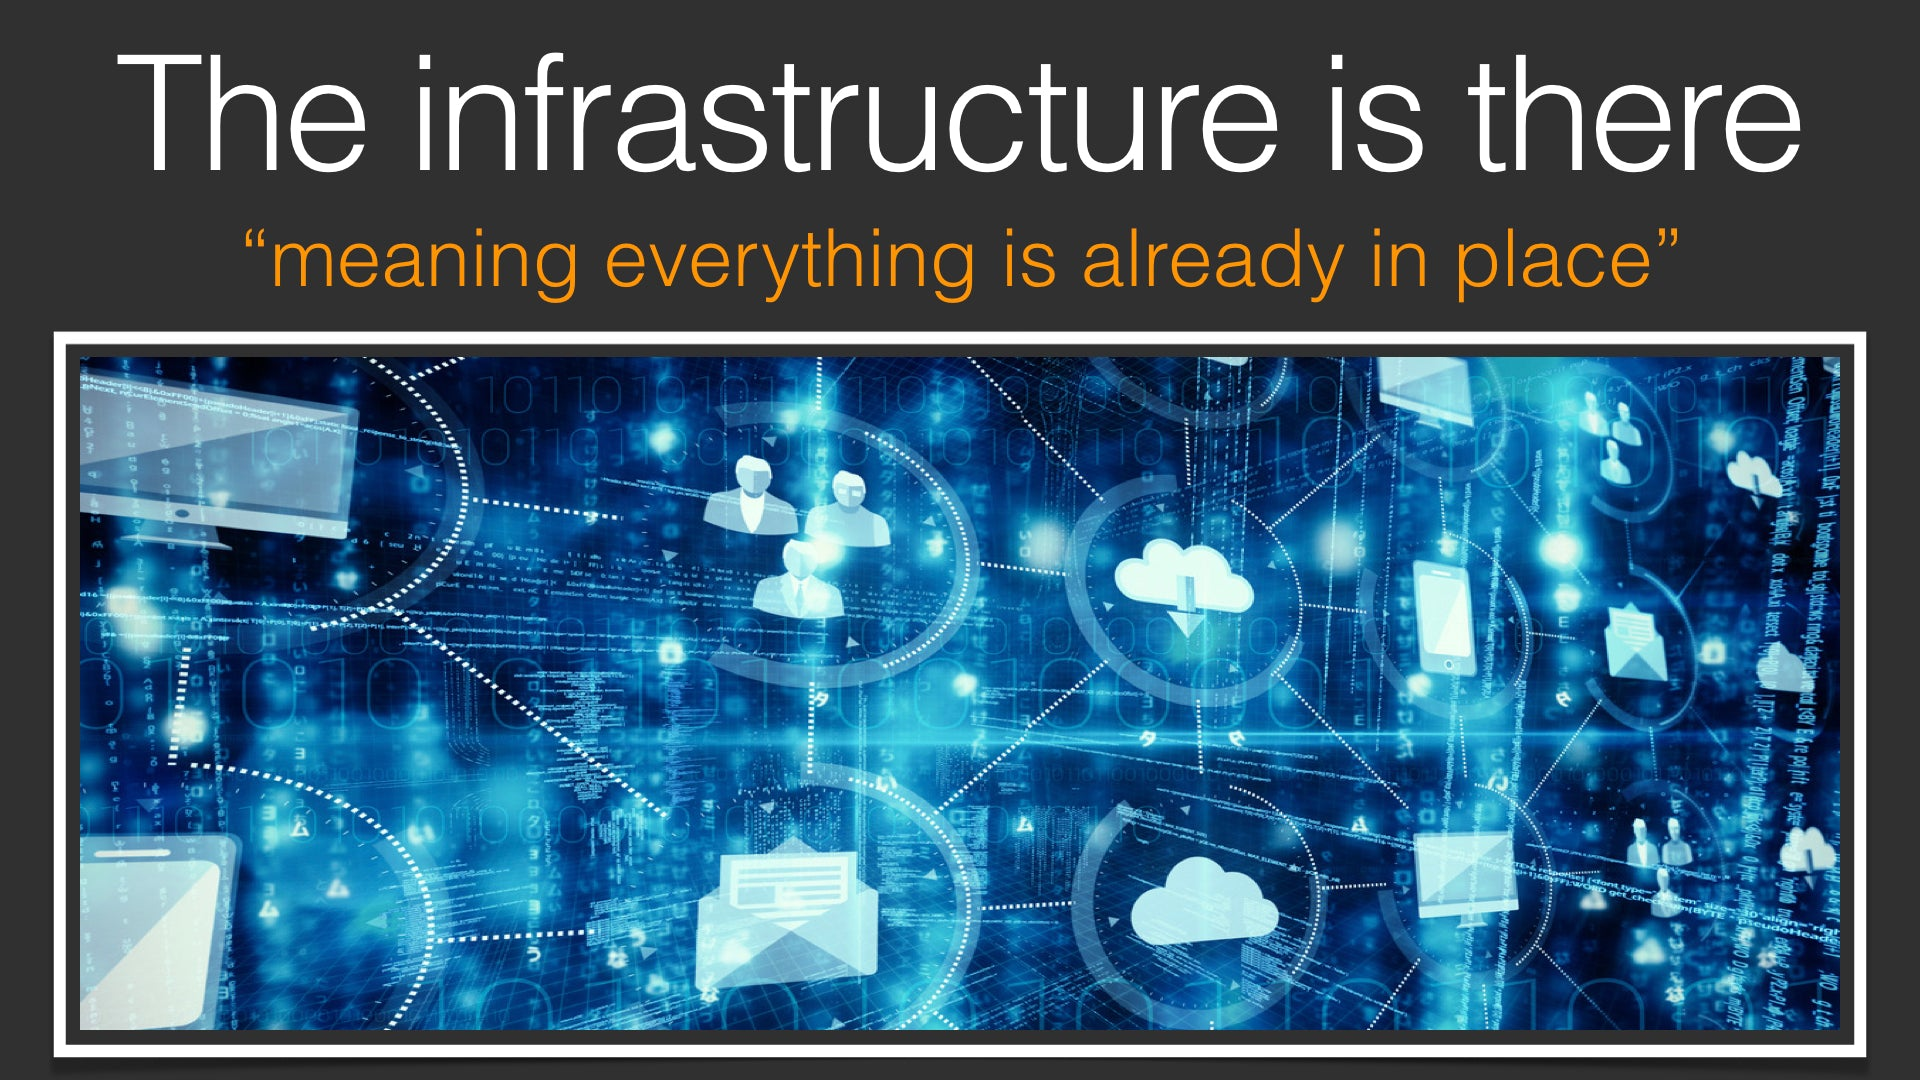 Infrastructure already there